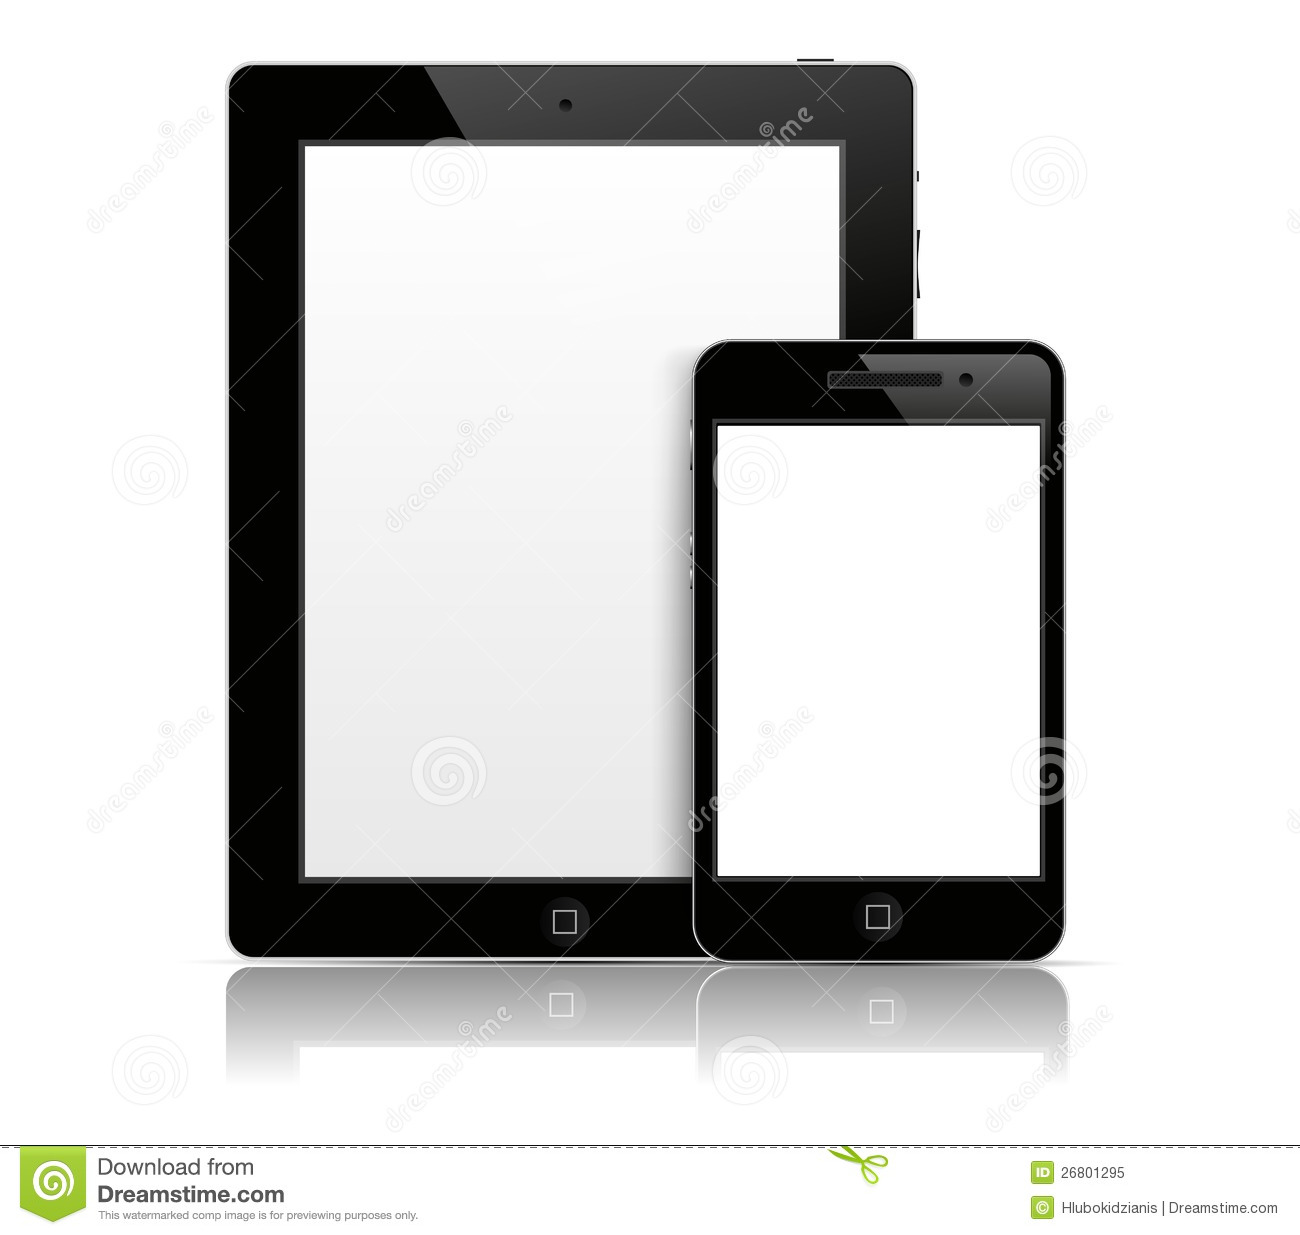 how to send photo from phone to tablet